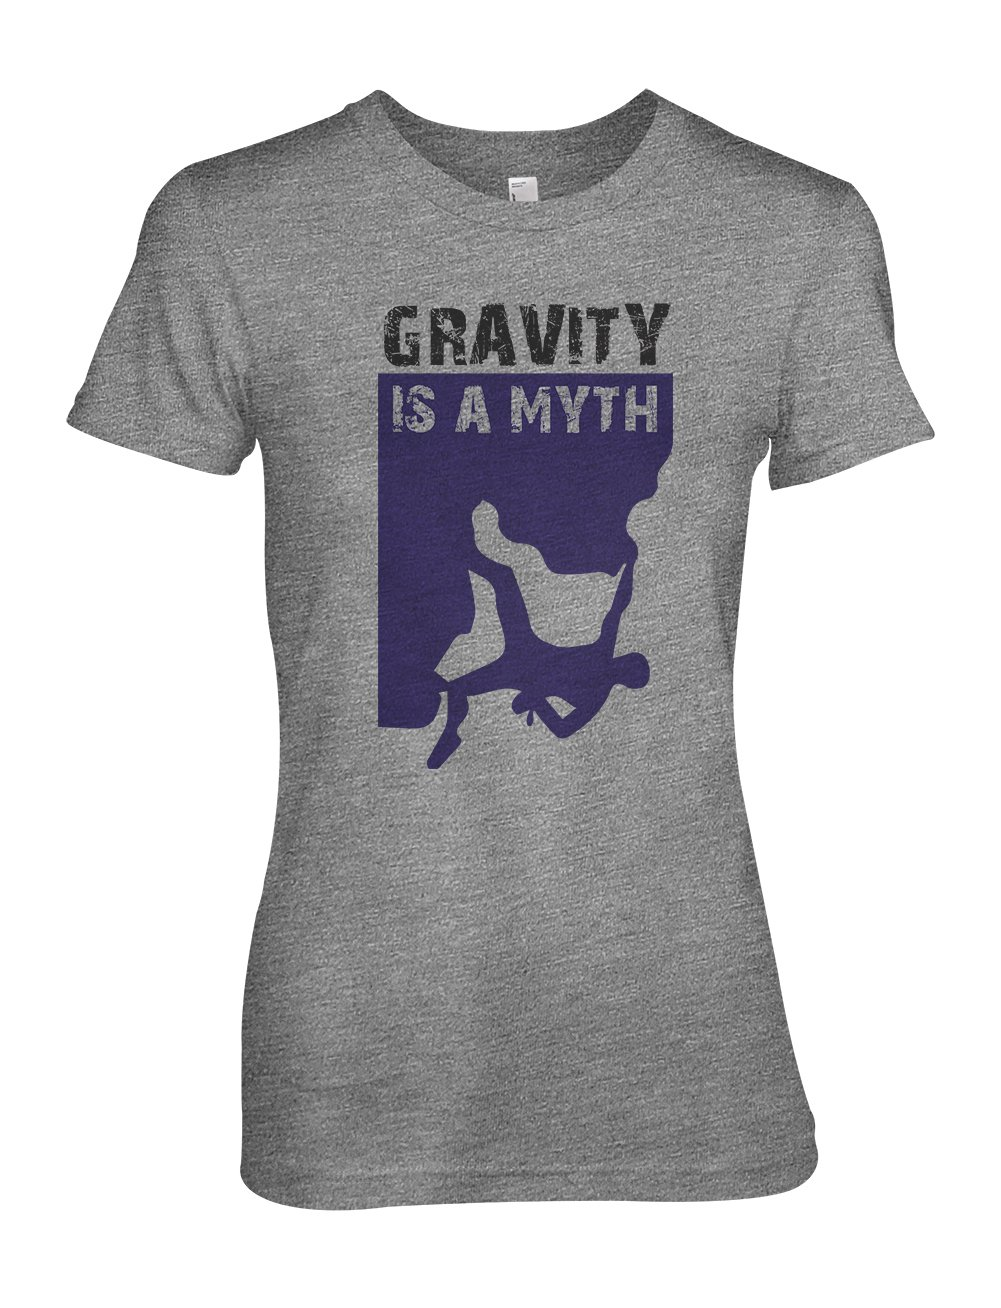 Gravity Is A Myth Climging Traveling Extreme Sports T Shirt 5794